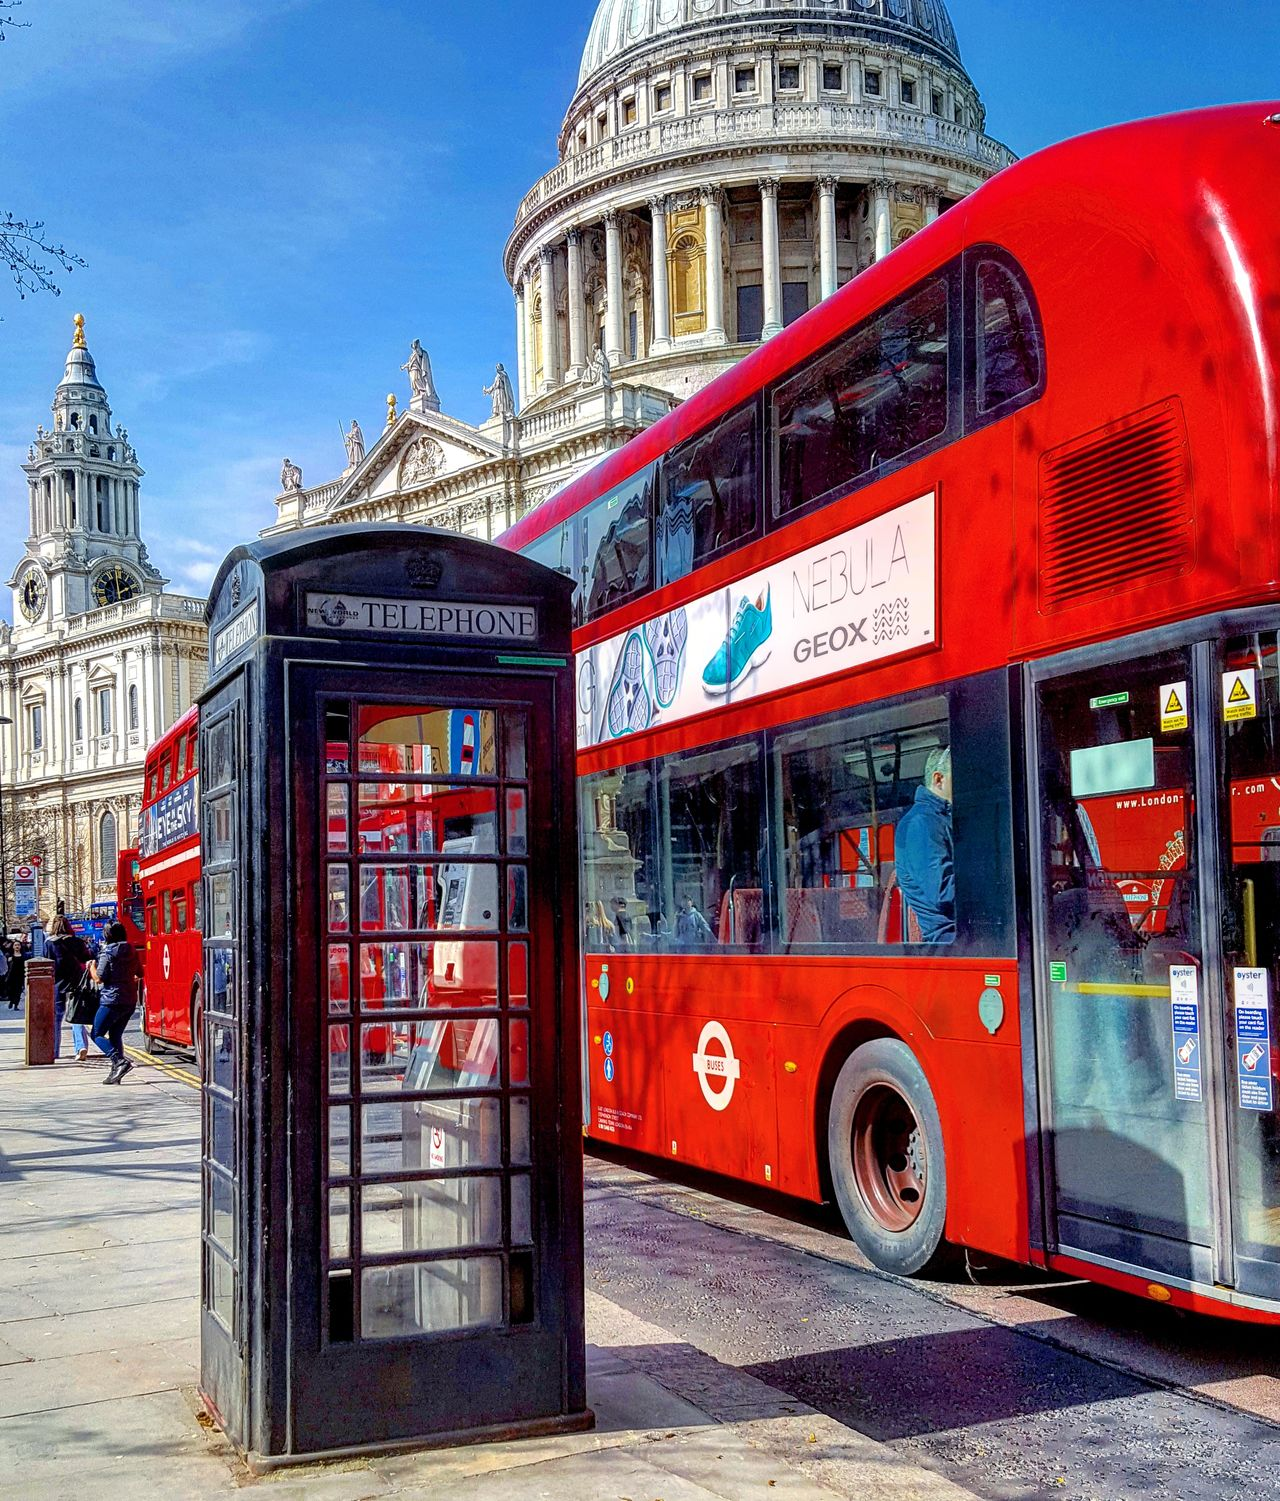 StPaulscathedral City City Of London Bus LONDON❤ London Trip London Calling Londoncity Londononly London Eye Sky Red Londonbus Travel Lovephotography  Vscocam VSCO Cam Citybestpics Bestpic Global Photography Lovelondon